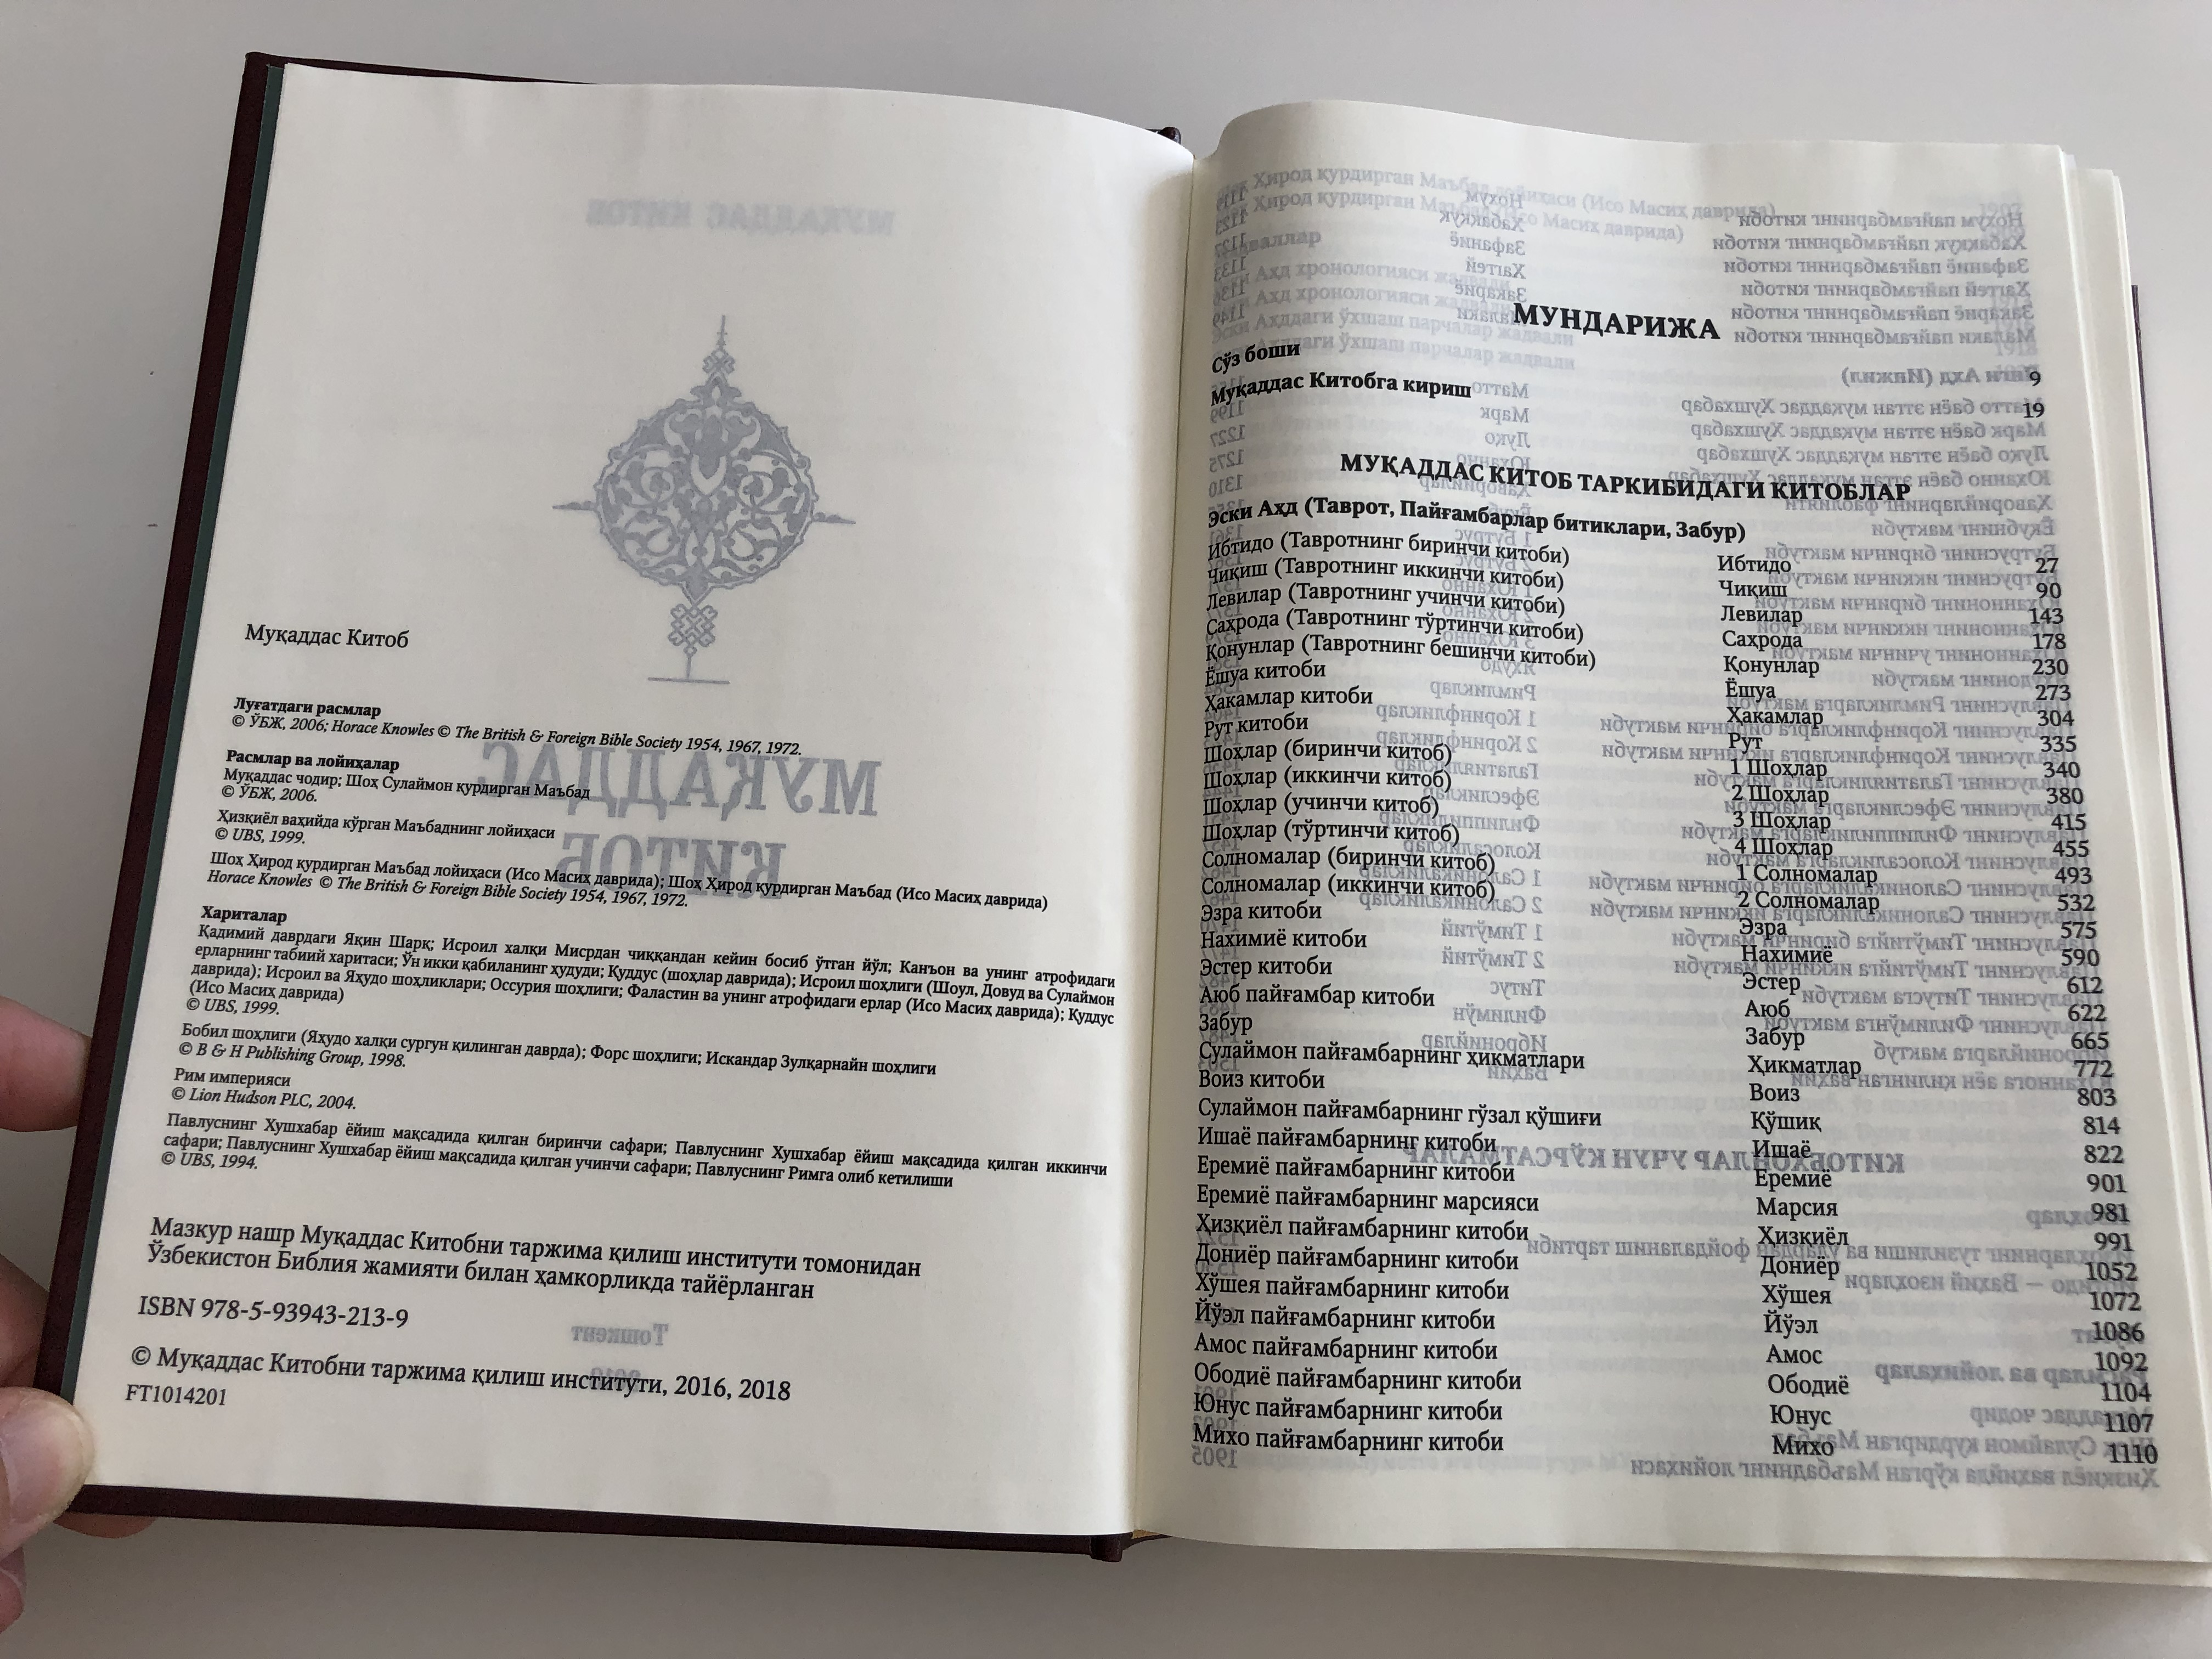 -uzbek-language-holy-bible-with-commentaries-and-nt-parallel-passage-tables-o-zbekcha-cyrillic-script-hardcover-2018-5-.jpg